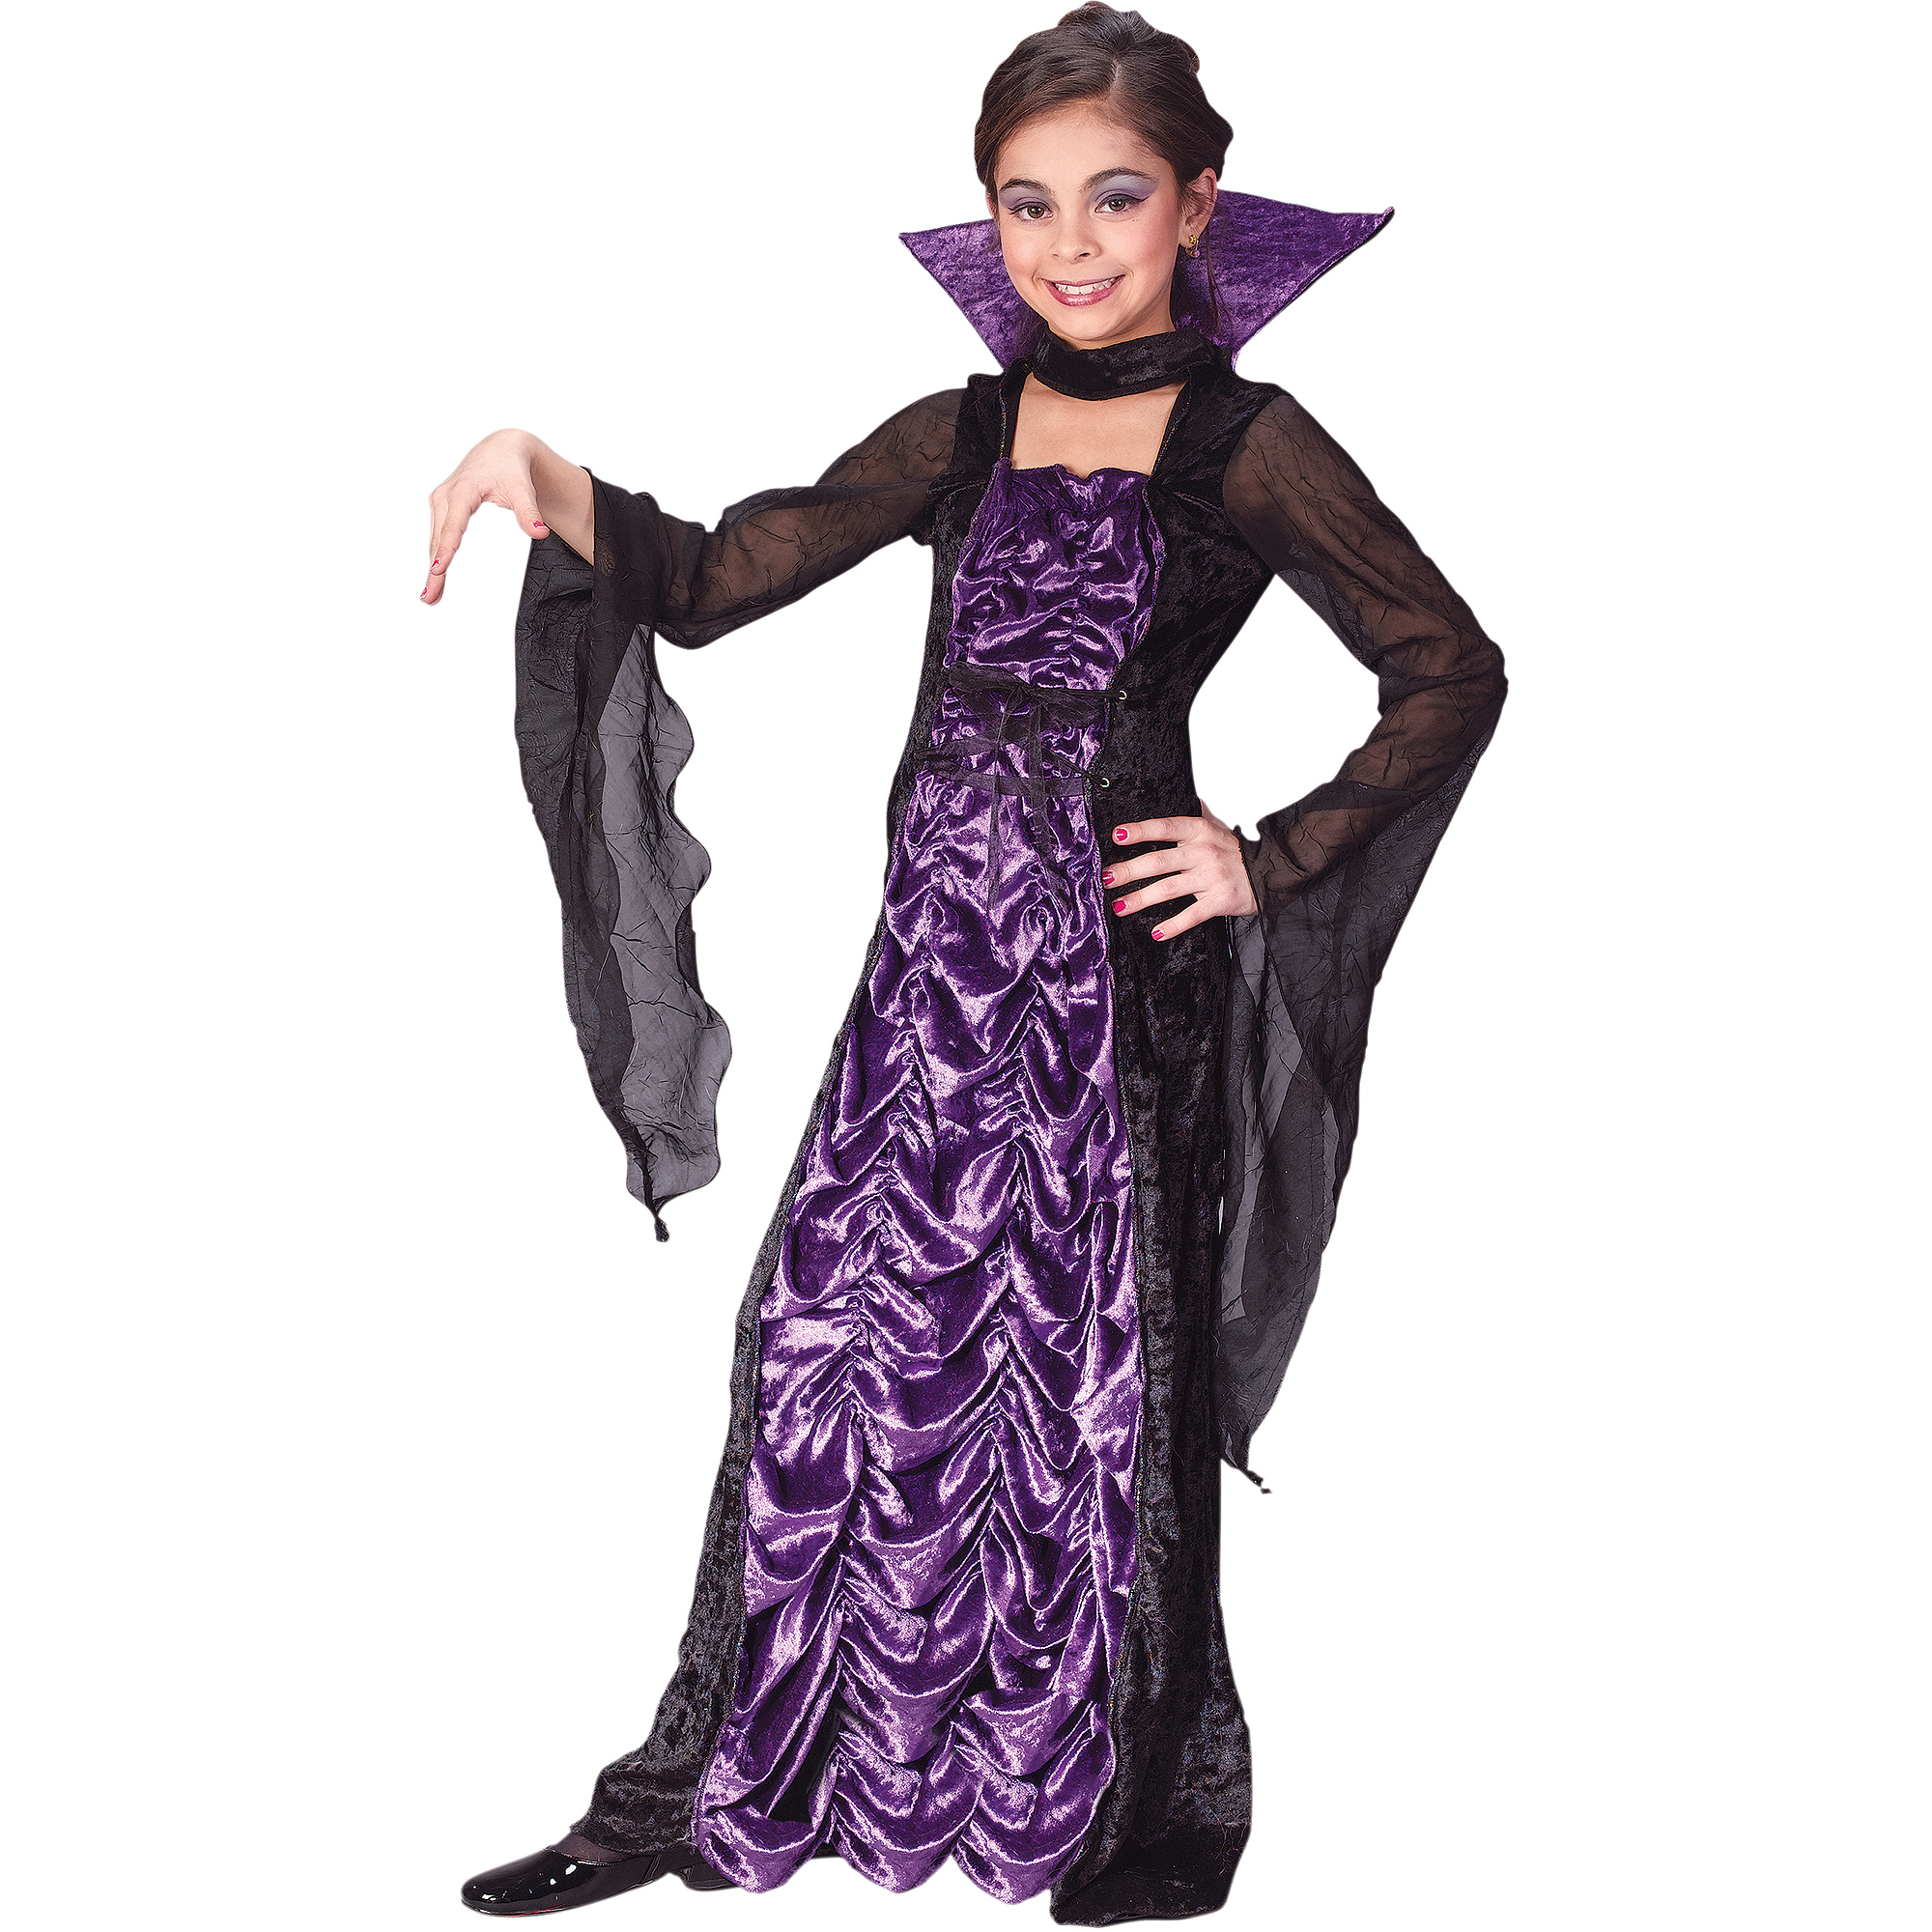 sc 1 st  Walmart & Fun World Countess of Darkness Child Halloween Costume - Walmart.com